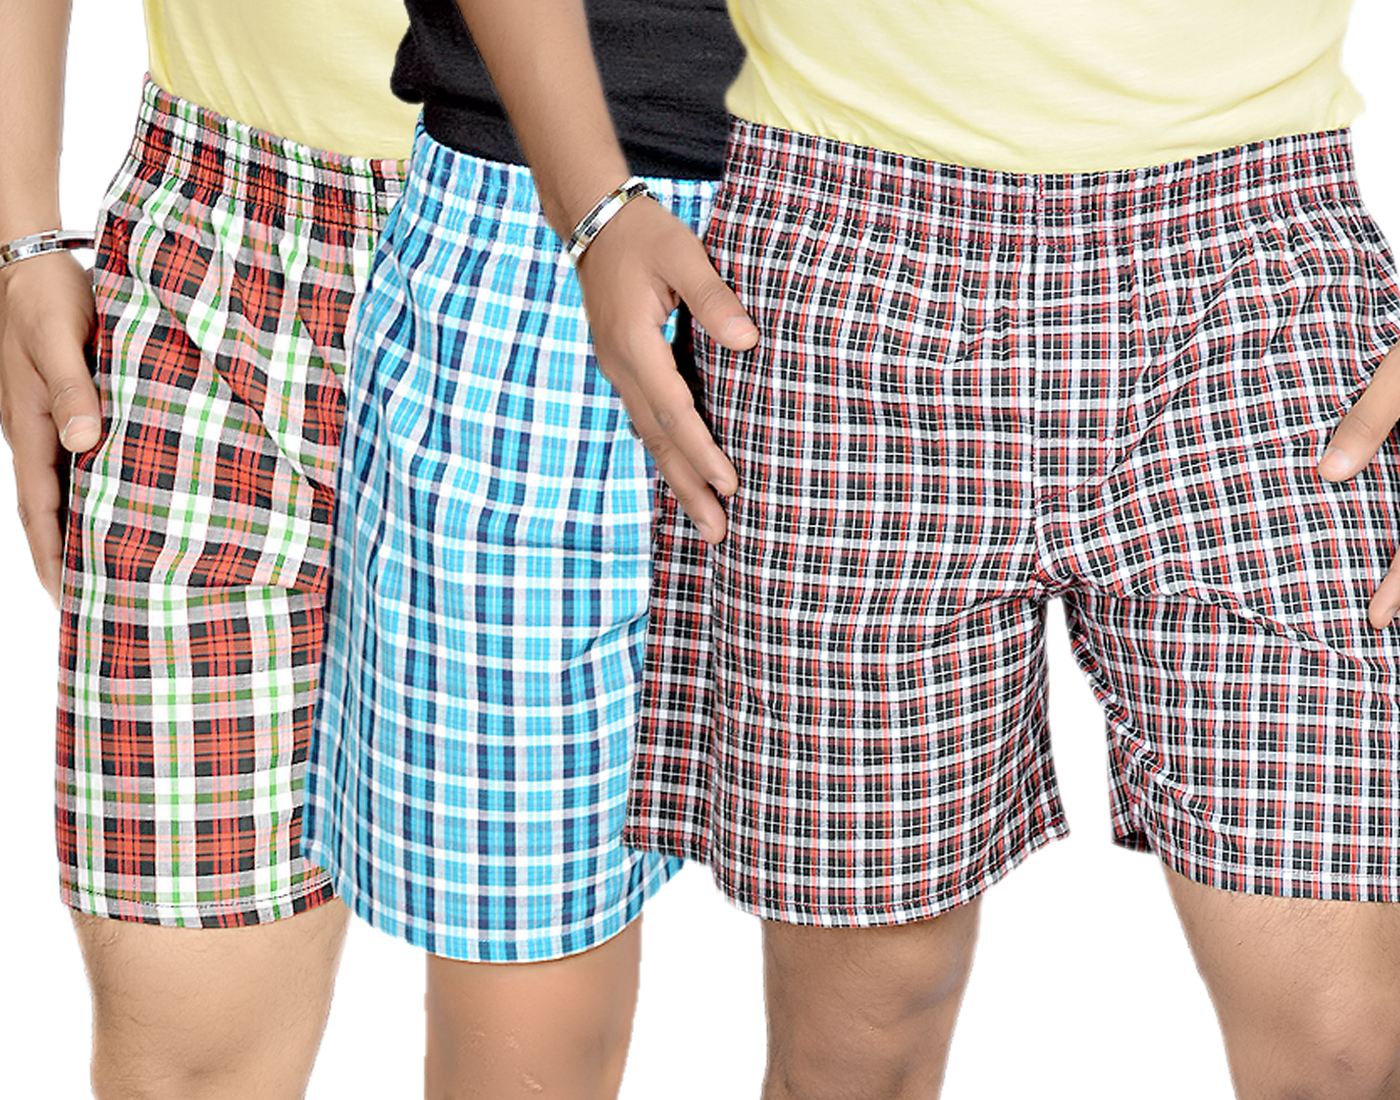 True Fashion Combo Of 3 Cotton Checkered Boxer Shorts SACBXR13